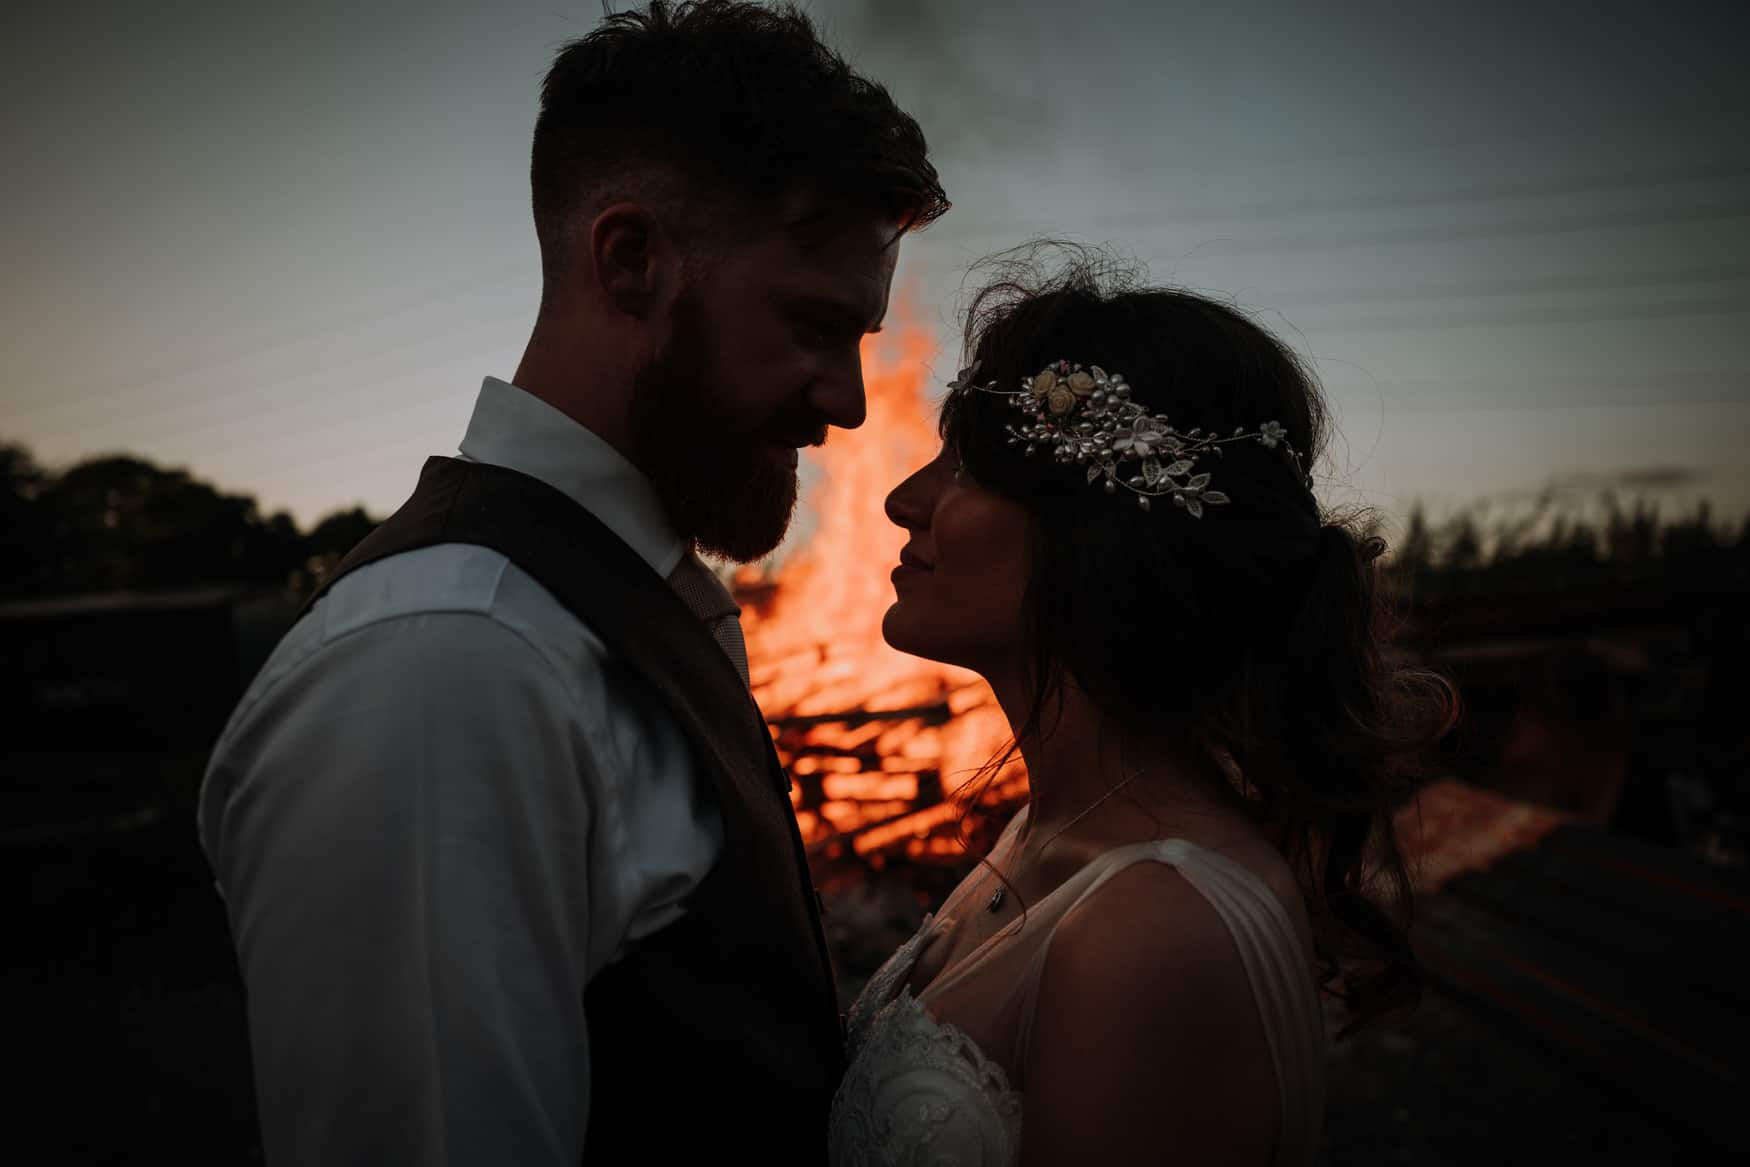 bride and groom portrait in front of a fire